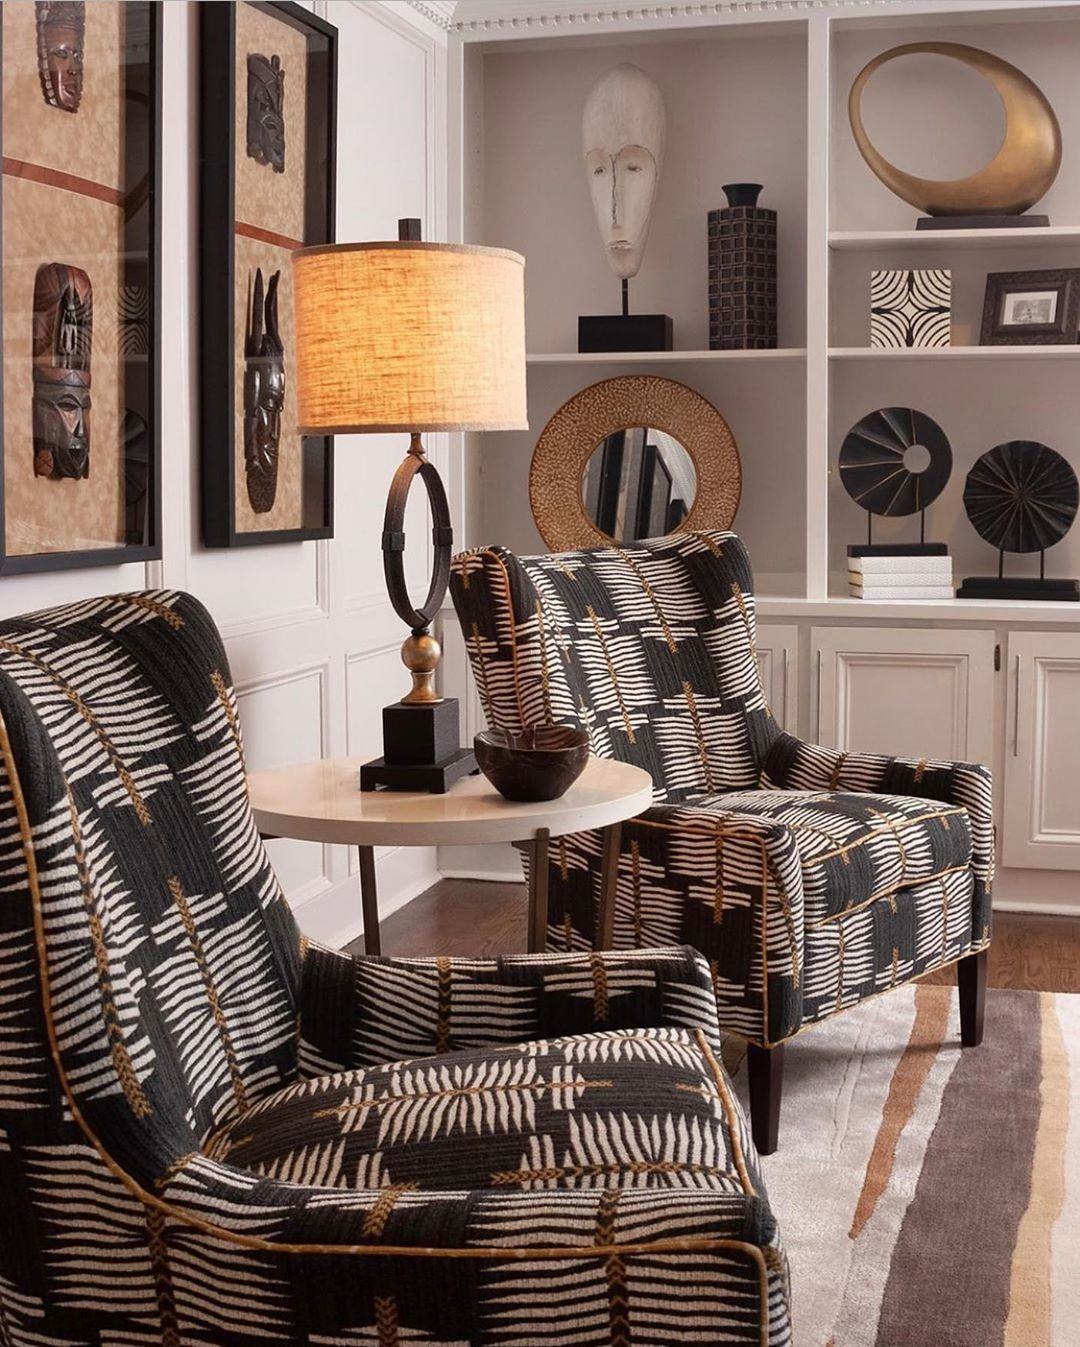 Pin On Home Style African decor dining room